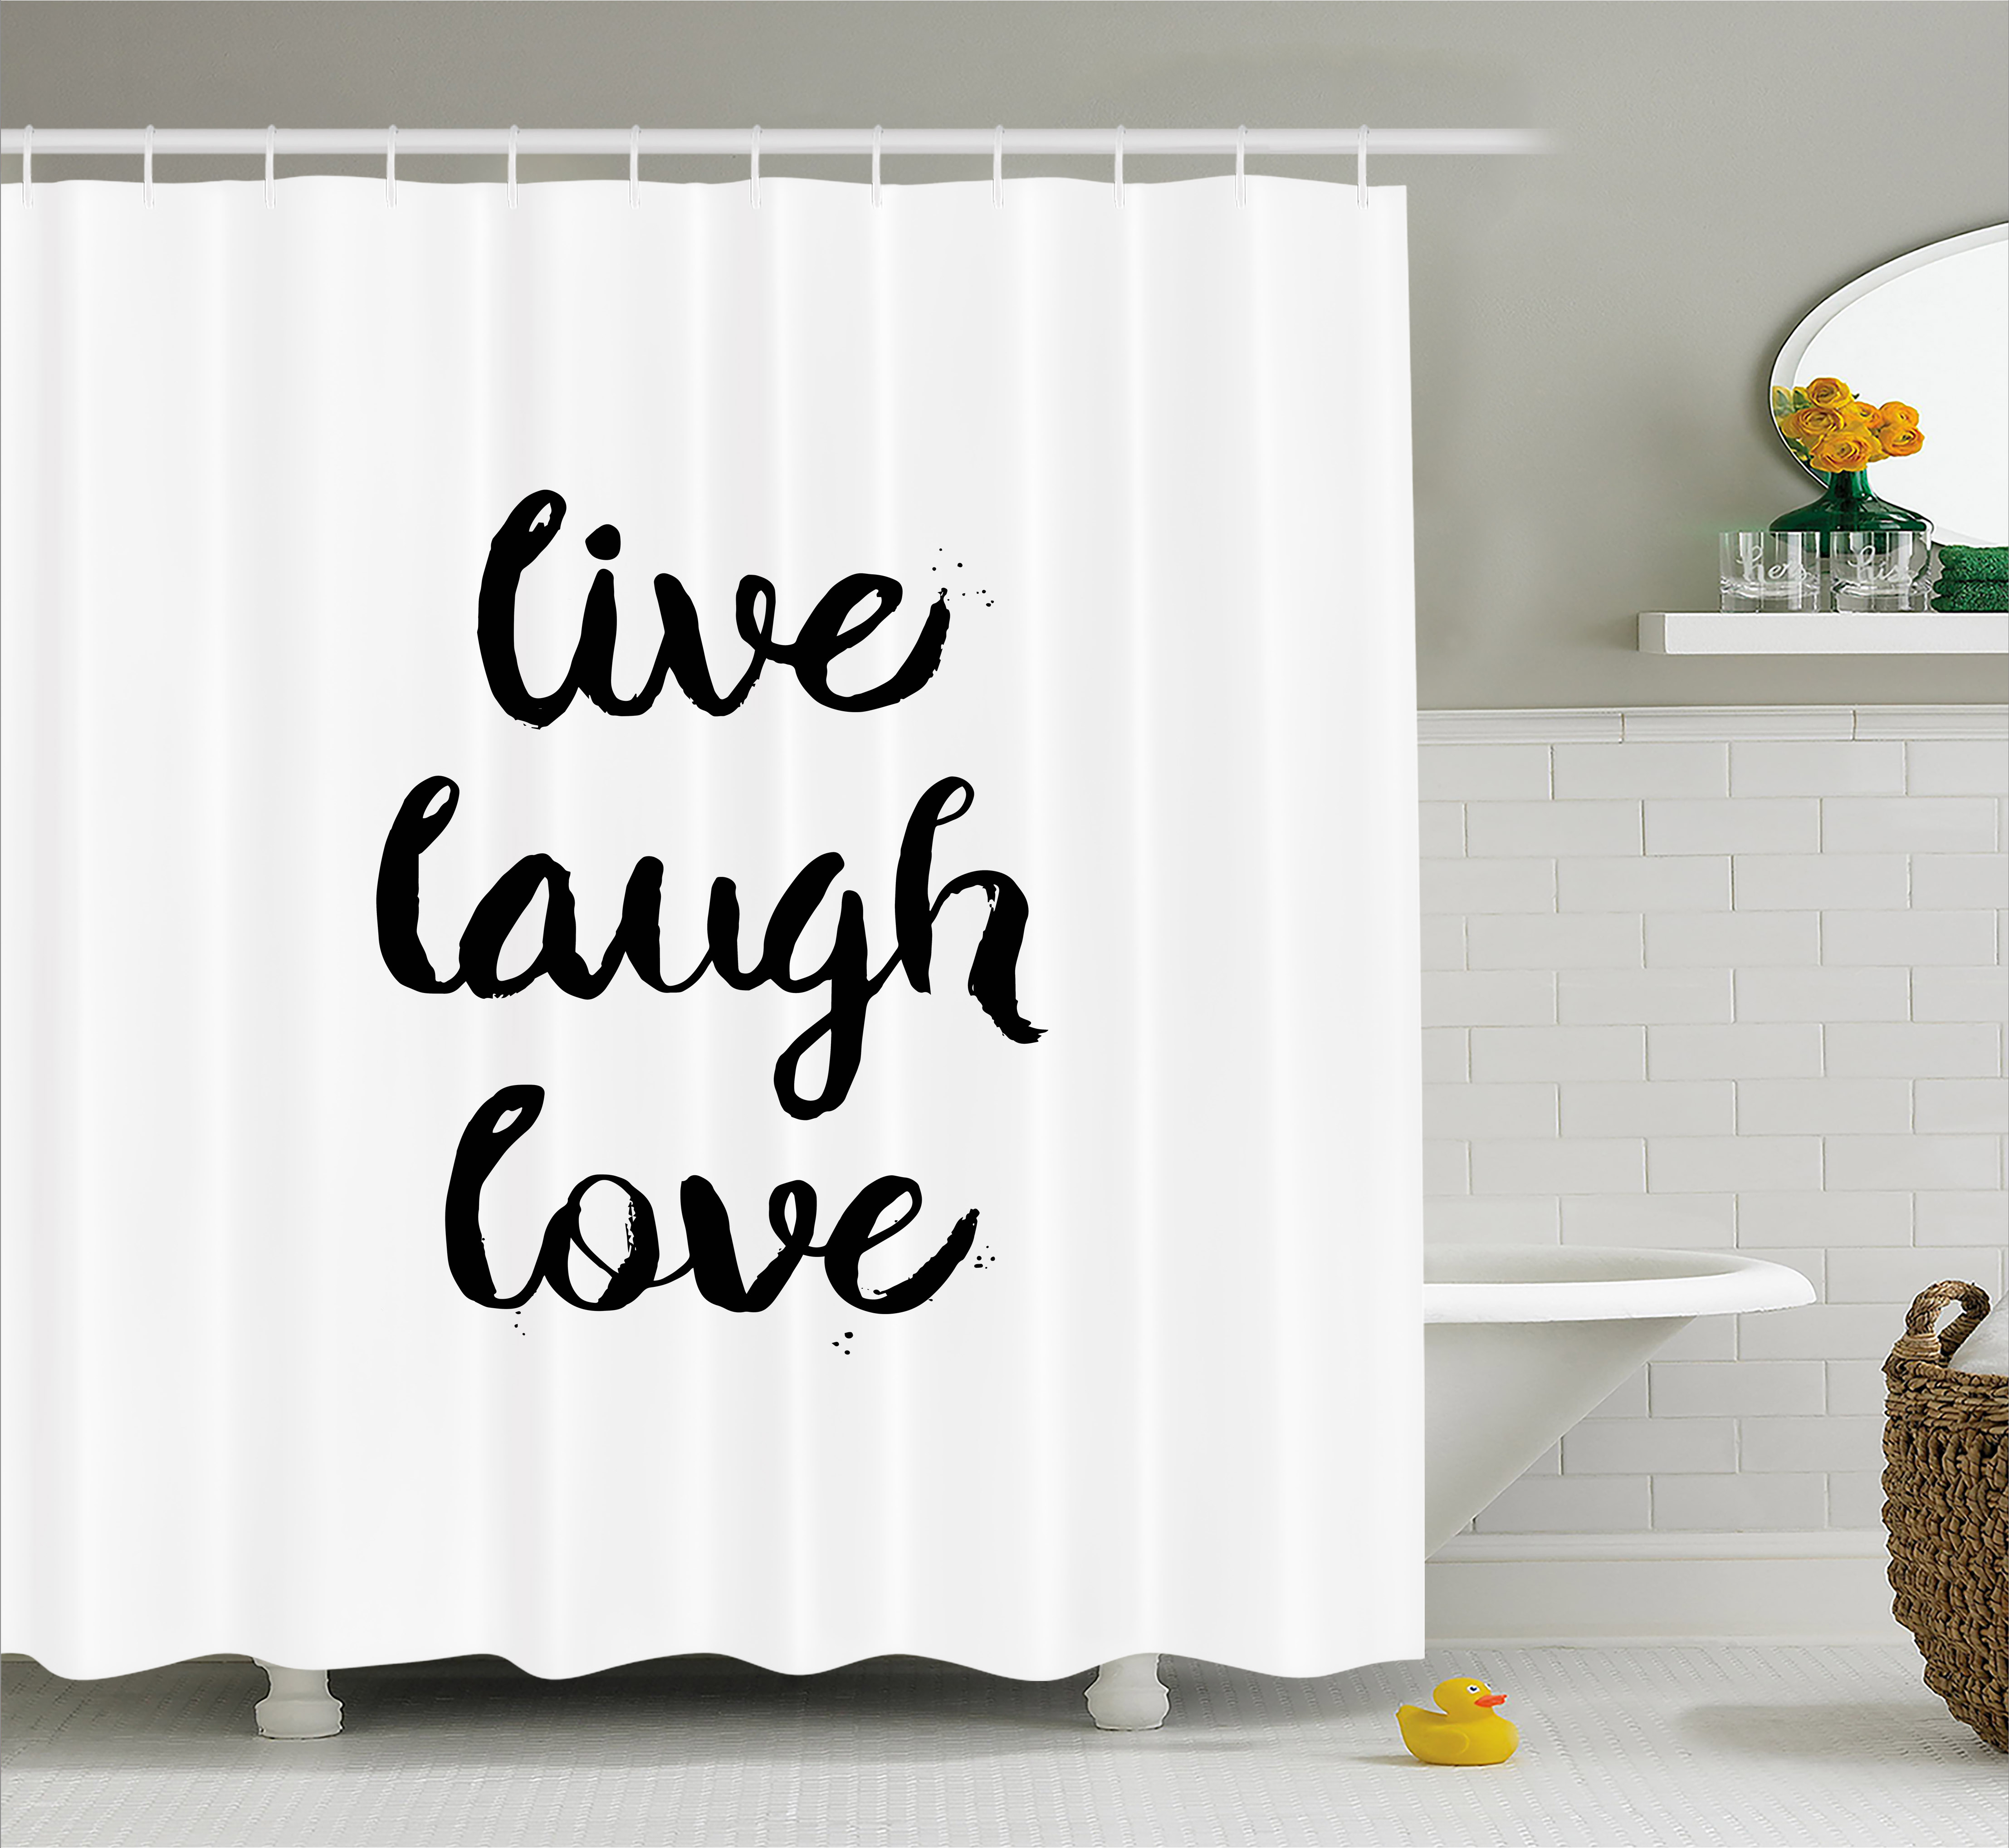 Live Laugh Love Shower Curtain Inspirational Slogan For Boosting The Motivation Of People In Monochrome Fabric Bathroom Set With Hooks 69W X 70L Inches